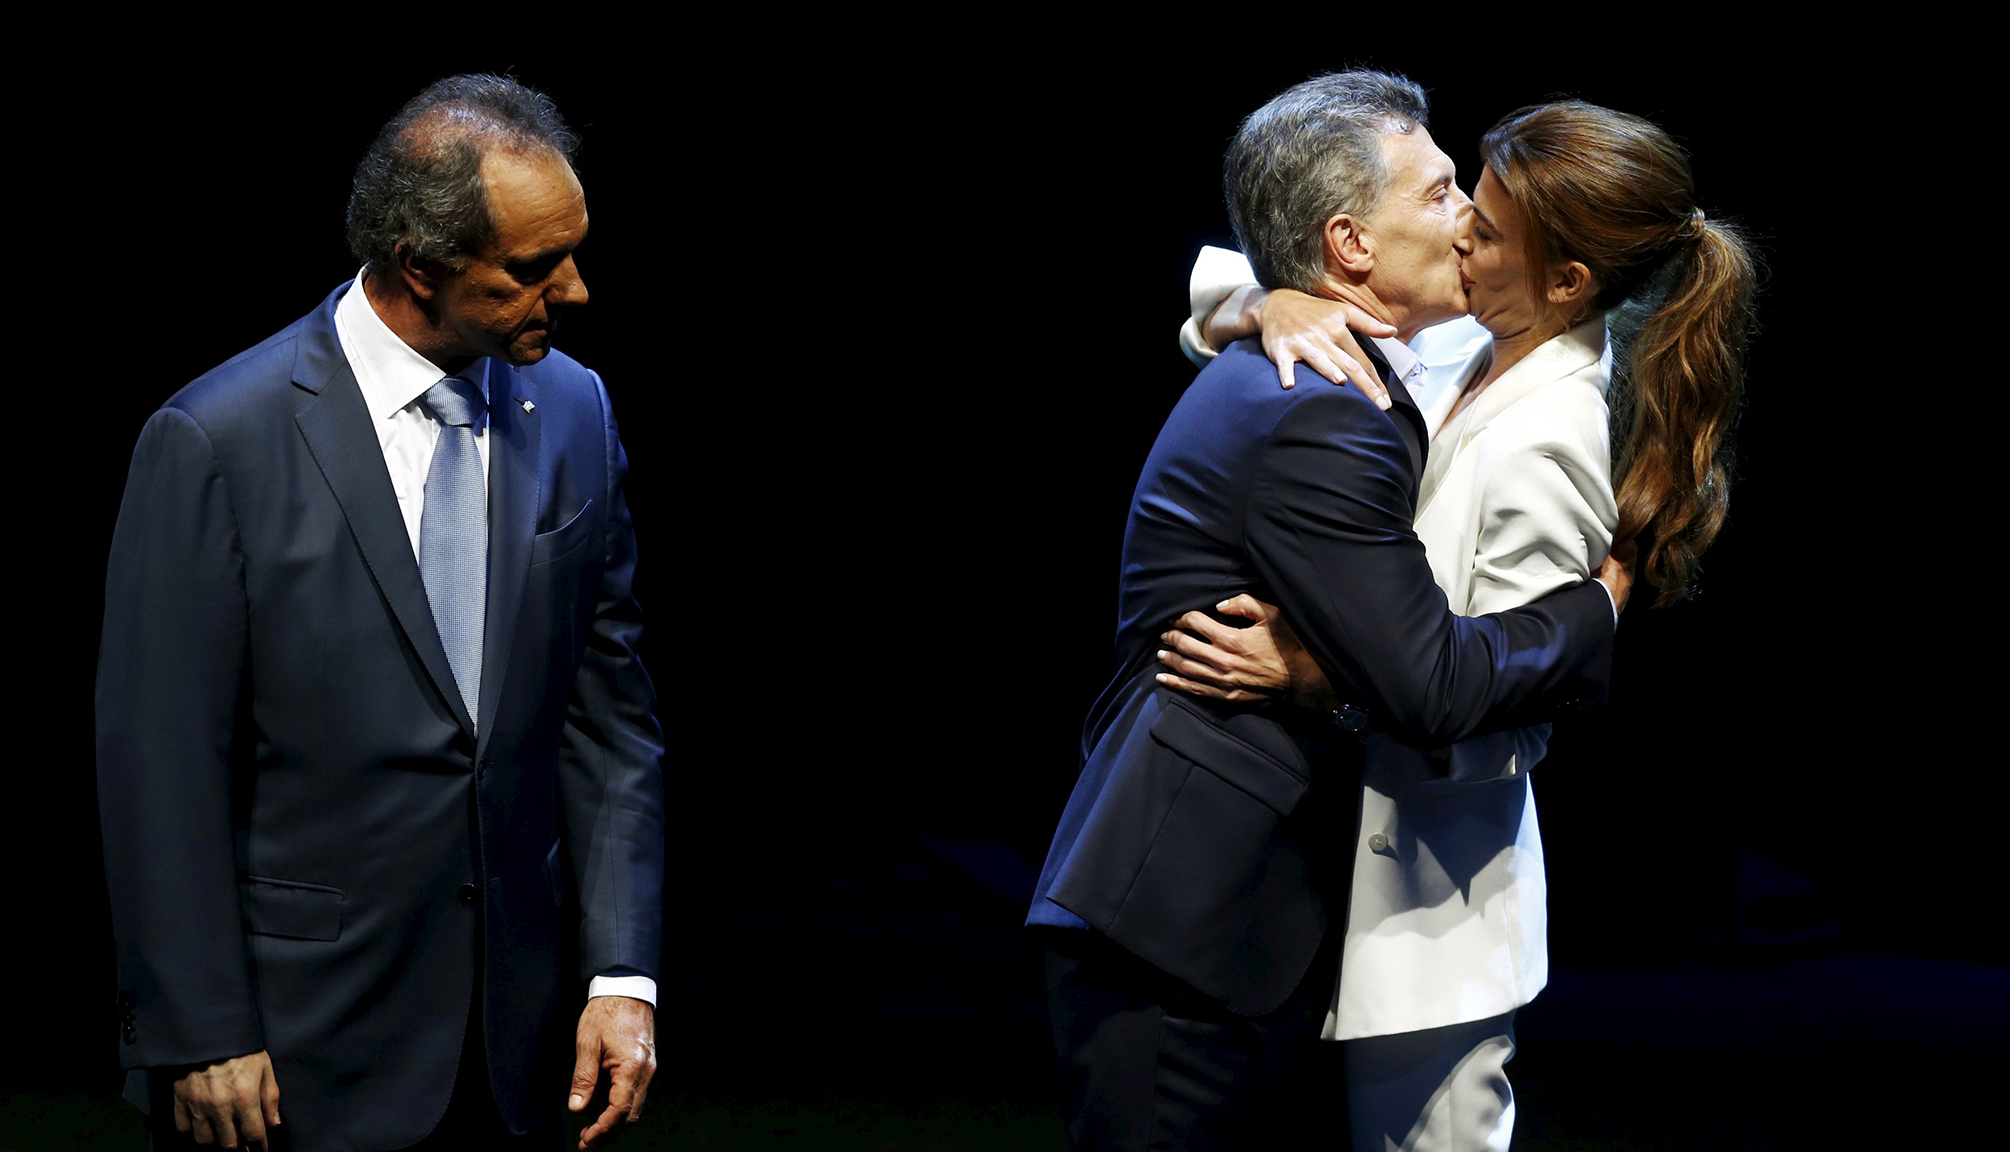 Macri, presidential candidate for the Cambiemos (Let's Change) alliance, kisses his wife Juliana Awada as Argentina's ruling party candidate Daniel Scioli watches at the end of the presidential debate ahead of November 22 run-off election in Buenos Aires